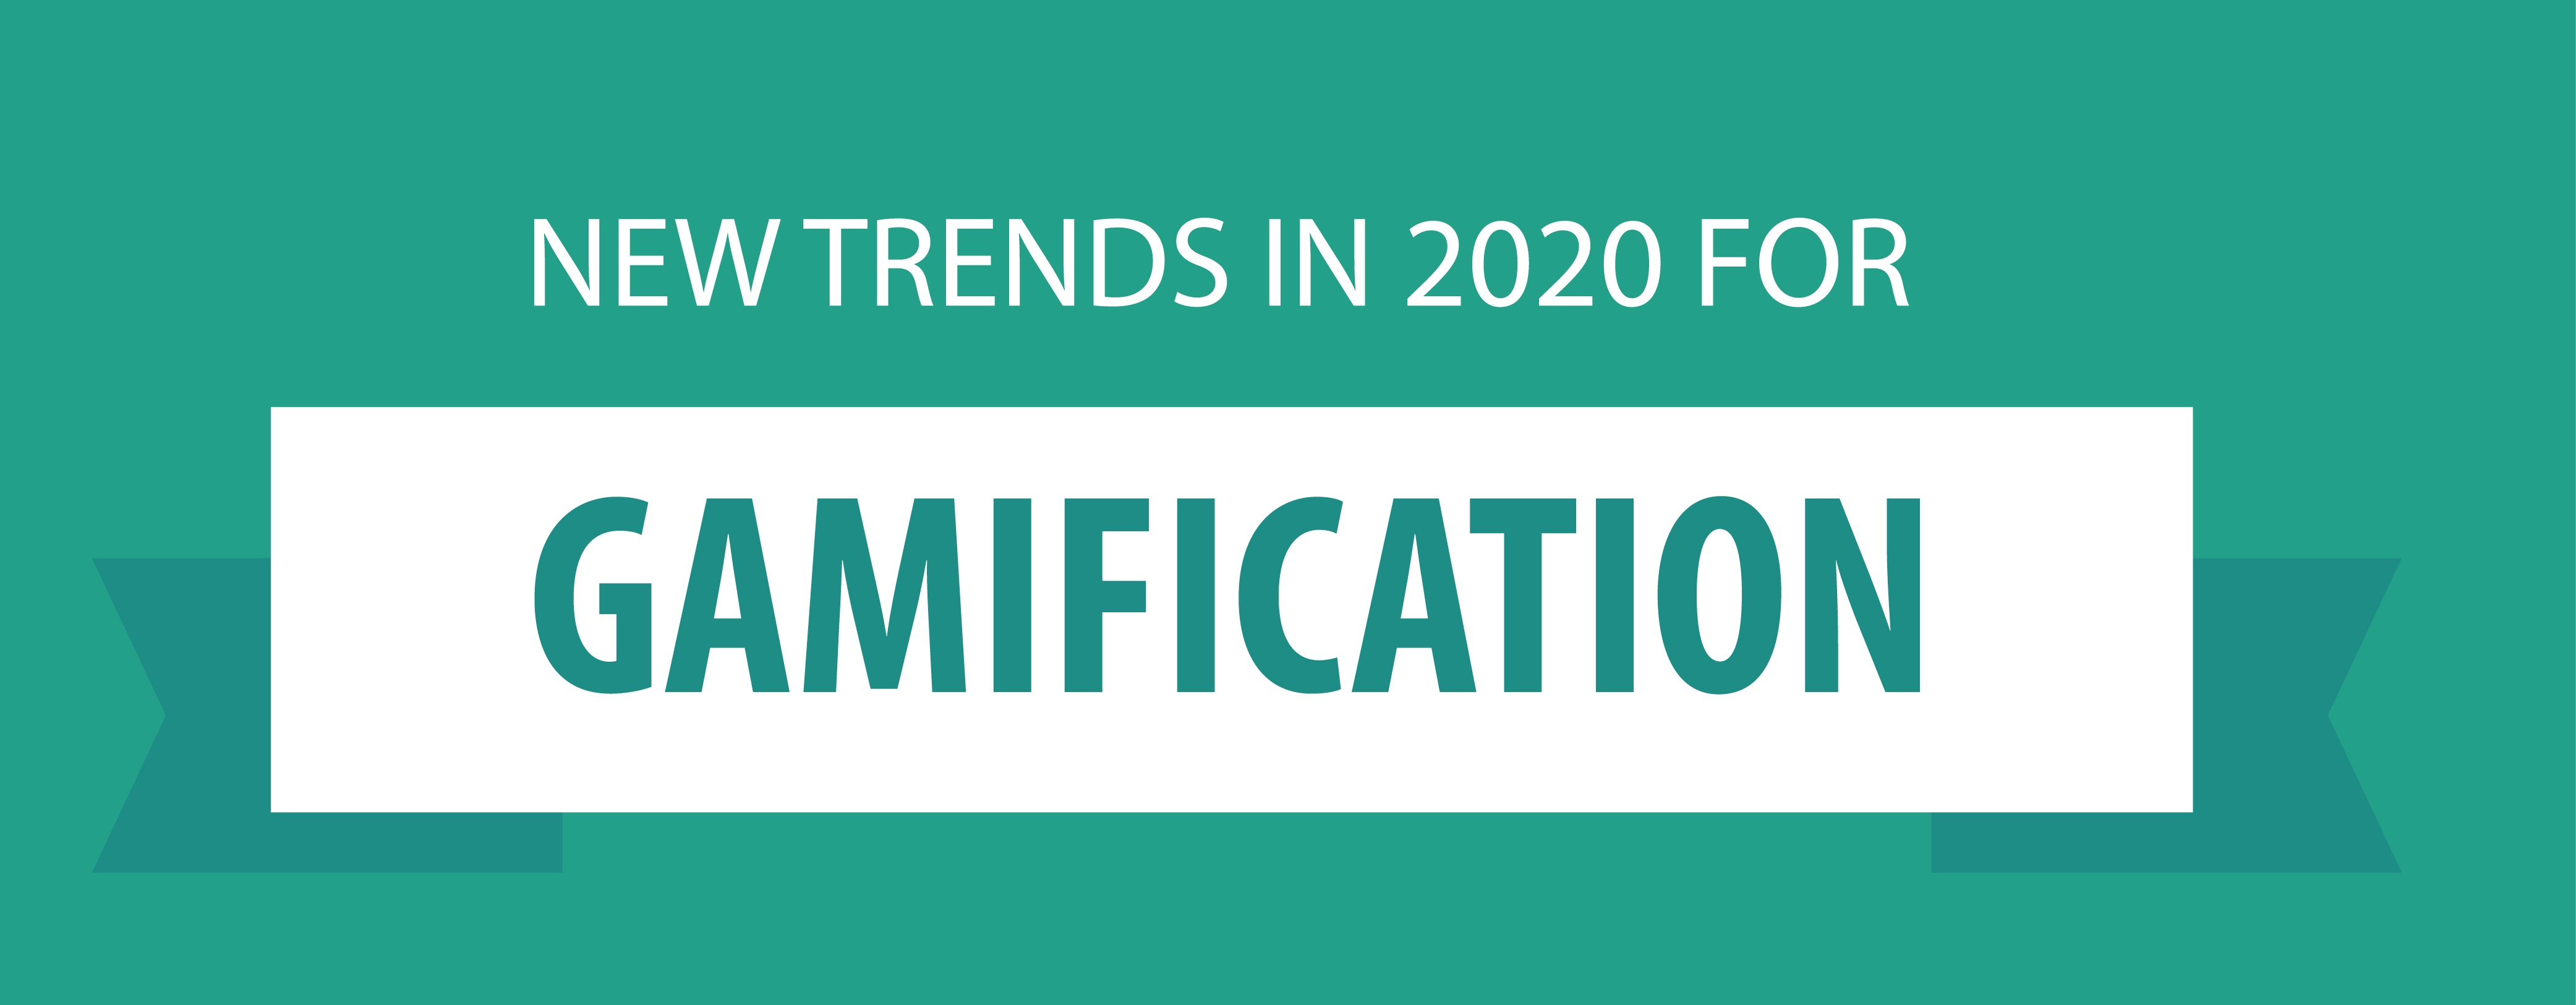 Gamification Trends For 2020